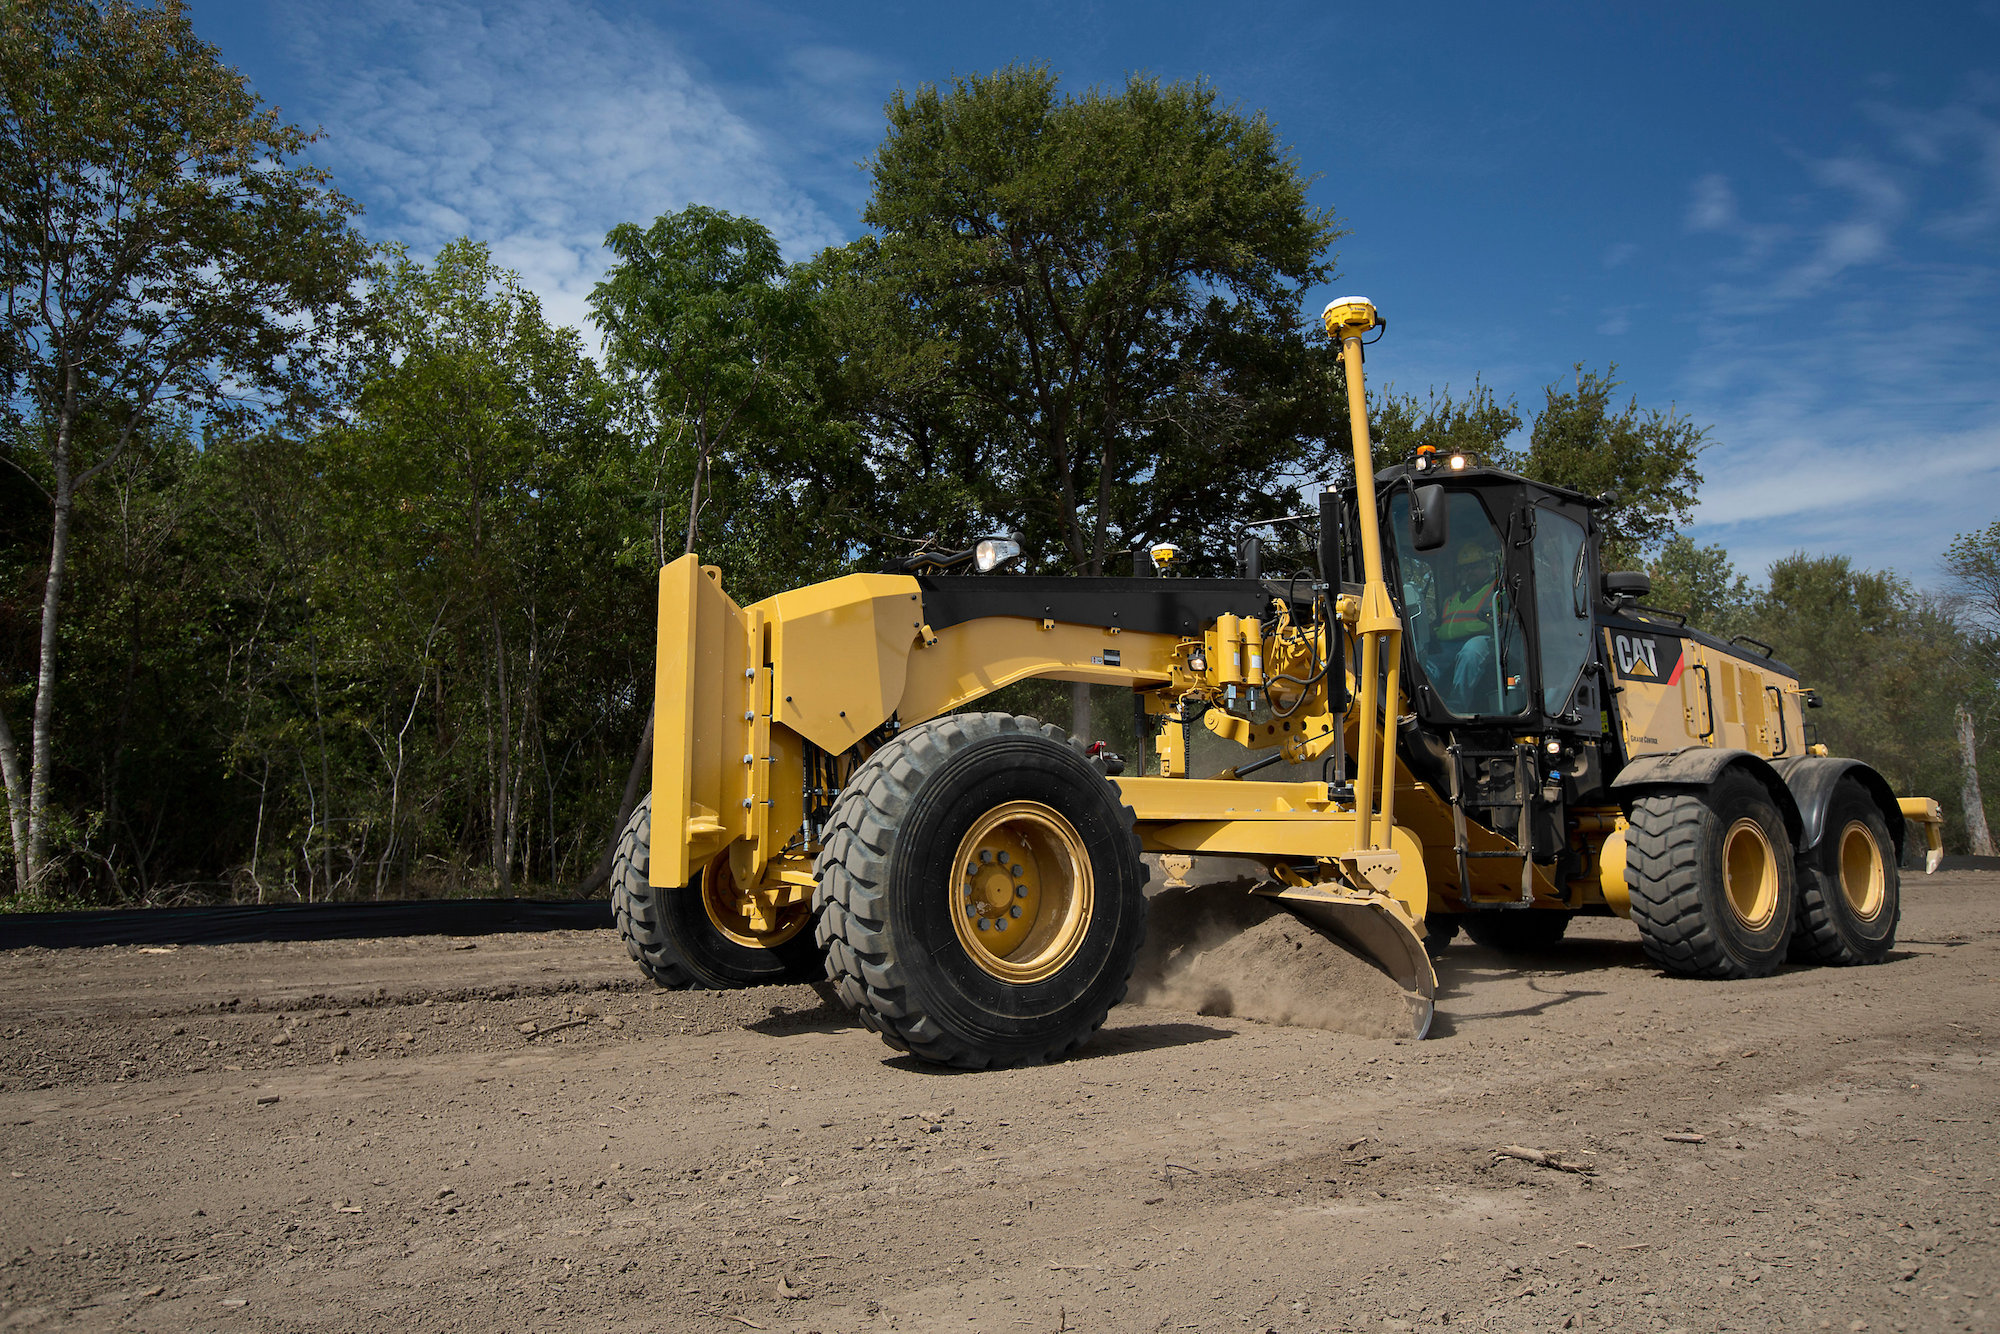 Caterpillar 39 S New 14m3 Is A Better Motor Grader In Just